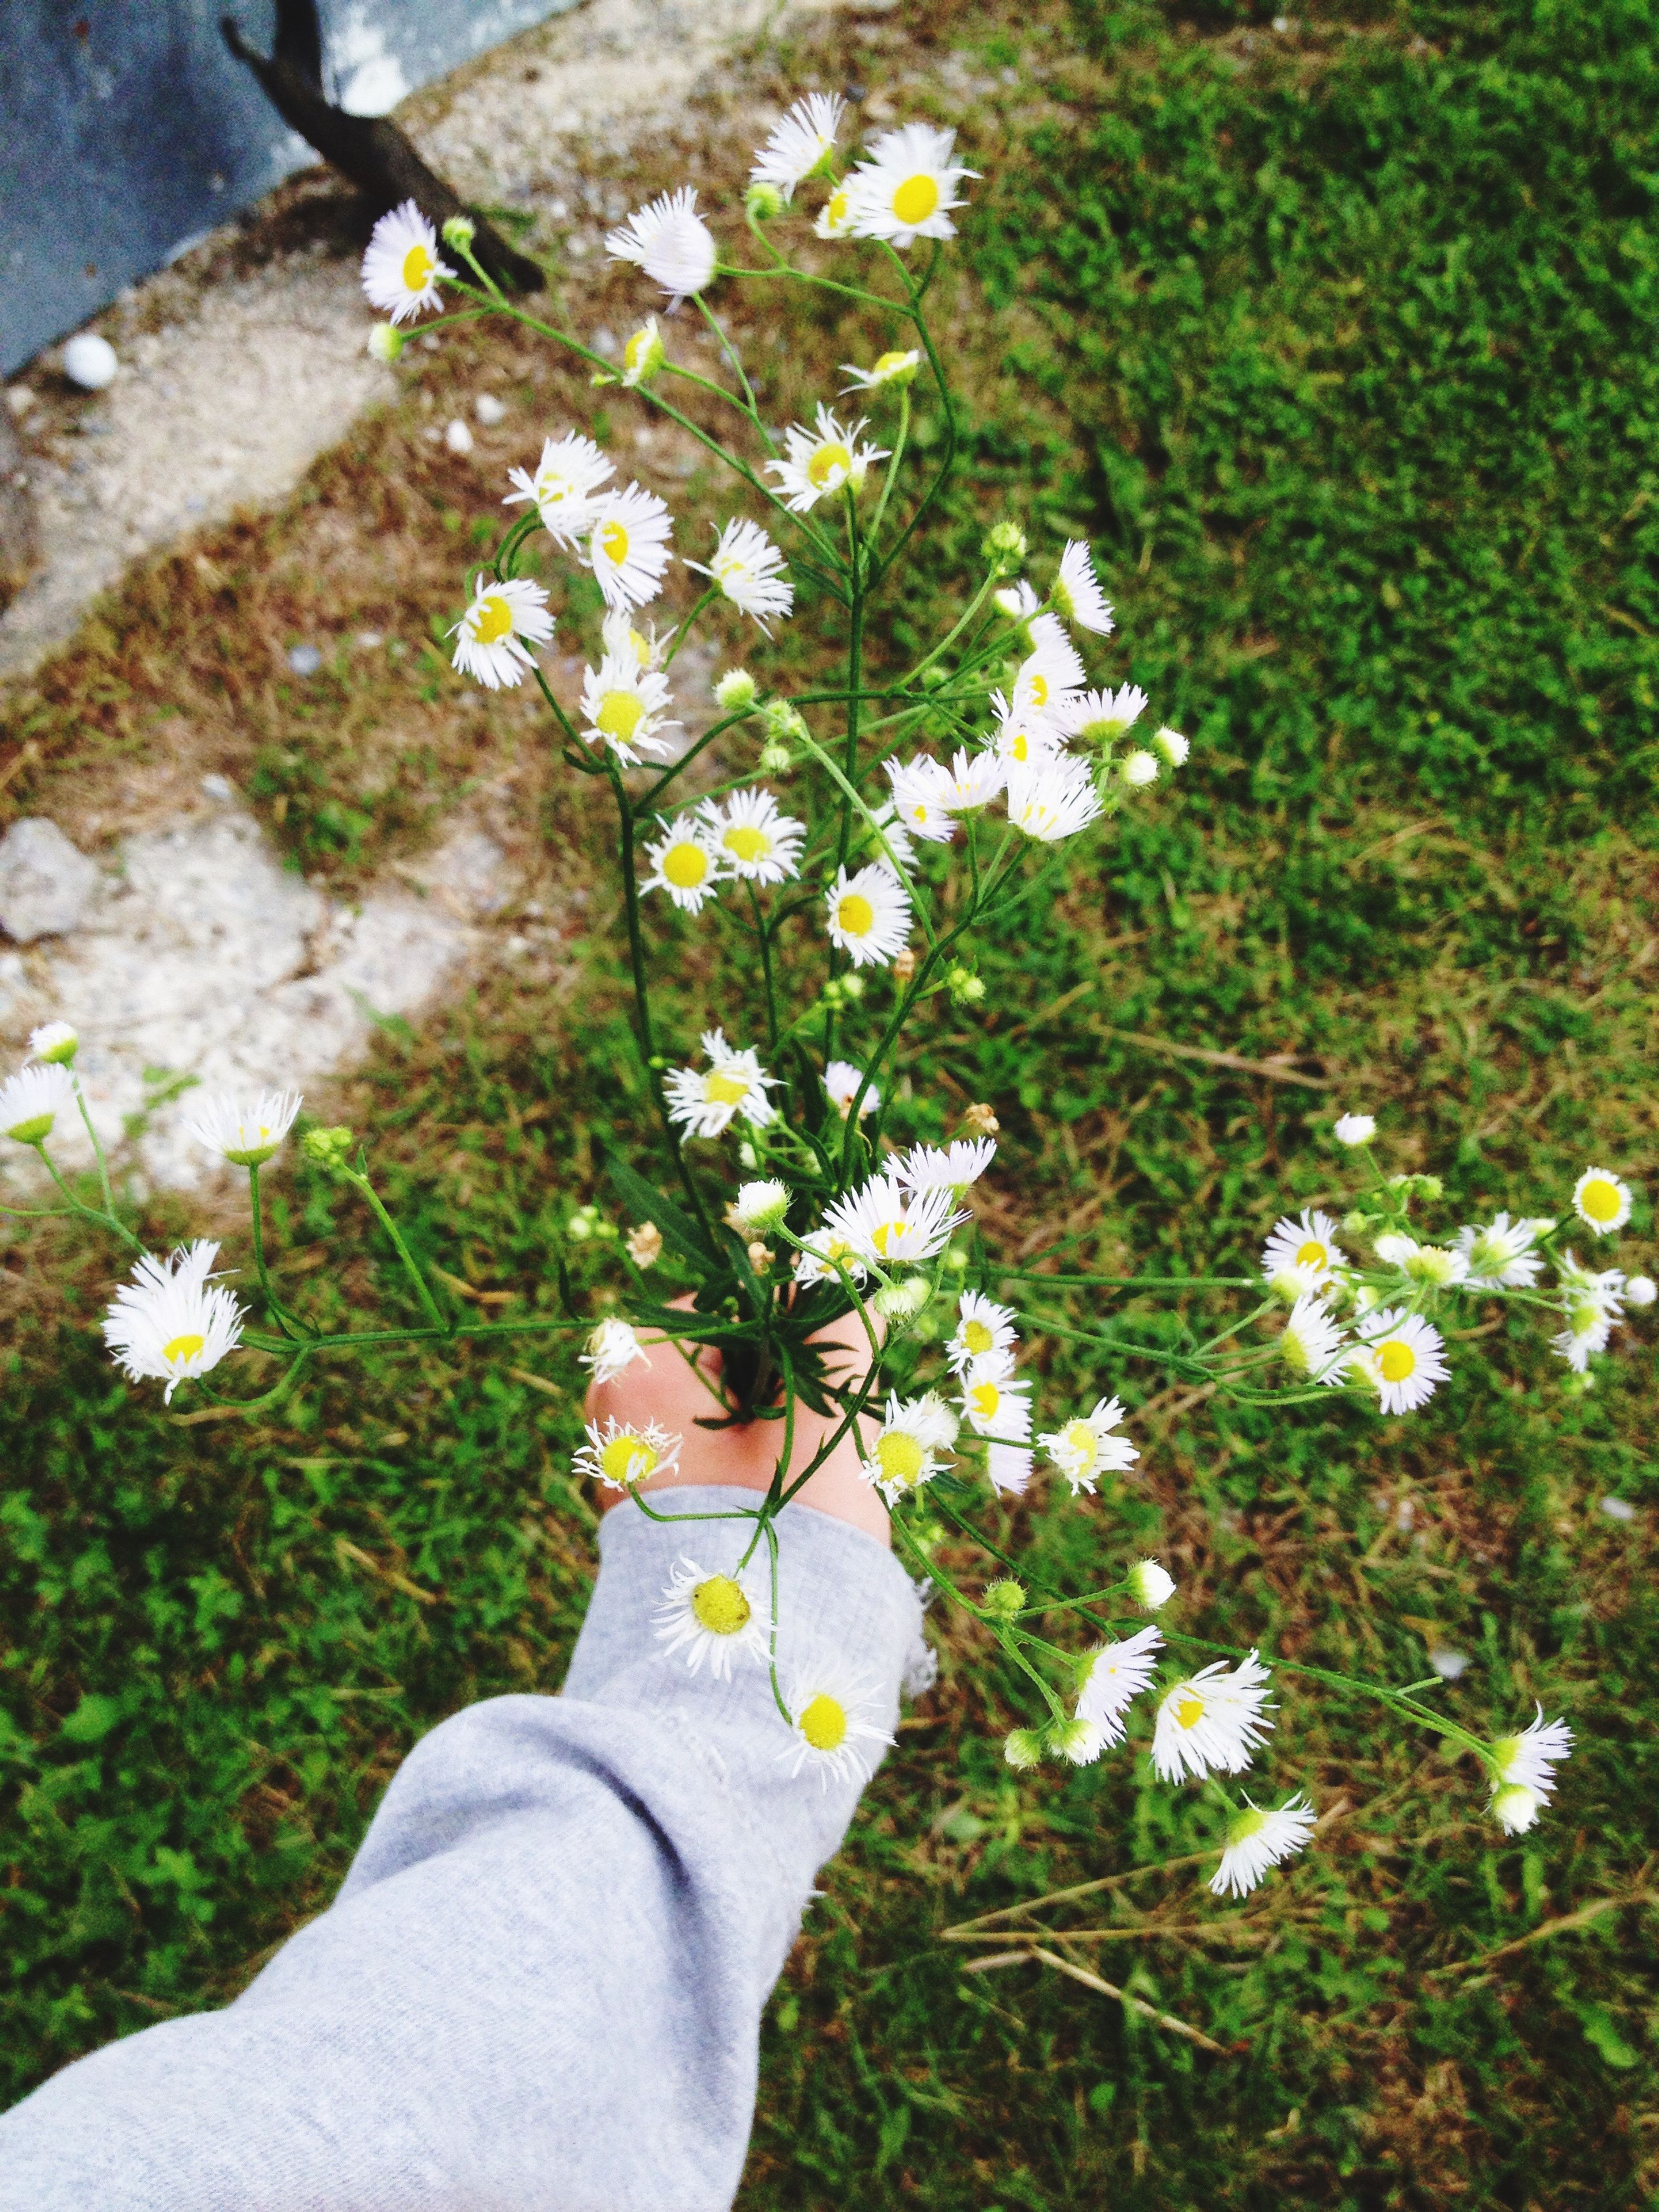 flower, human body part, one person, personal perspective, human leg, human hand, real people, growth, nature, low section, day, fragility, plant, outdoors, beauty in nature, close-up, freshness, flower head, people